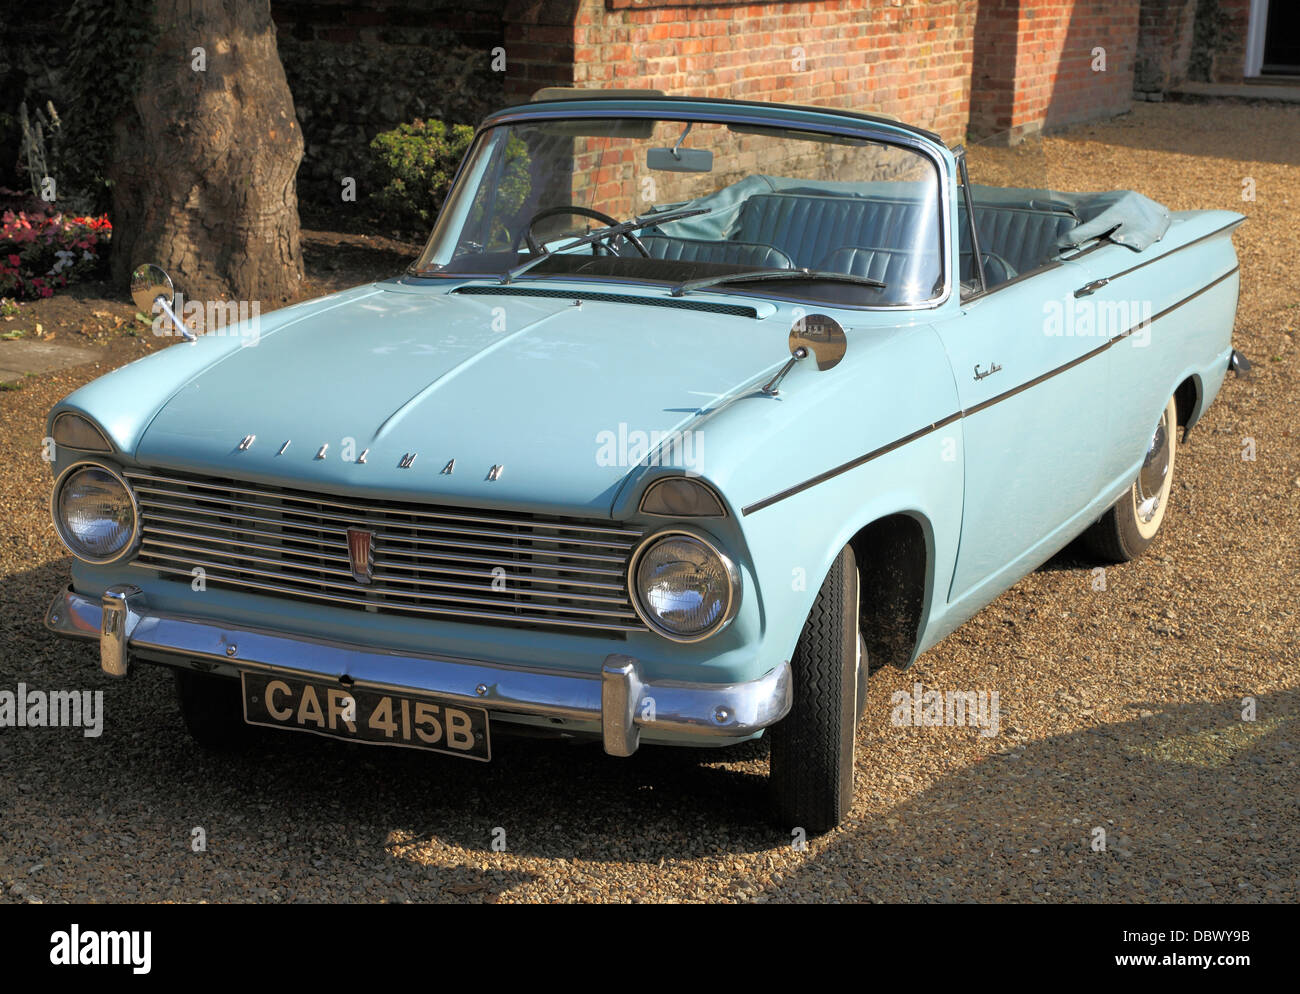 Hillman Super Minx, 1960s vintage motor car, British classic cars vehicles Hillmans, convertible convertibles, England - Stock Image